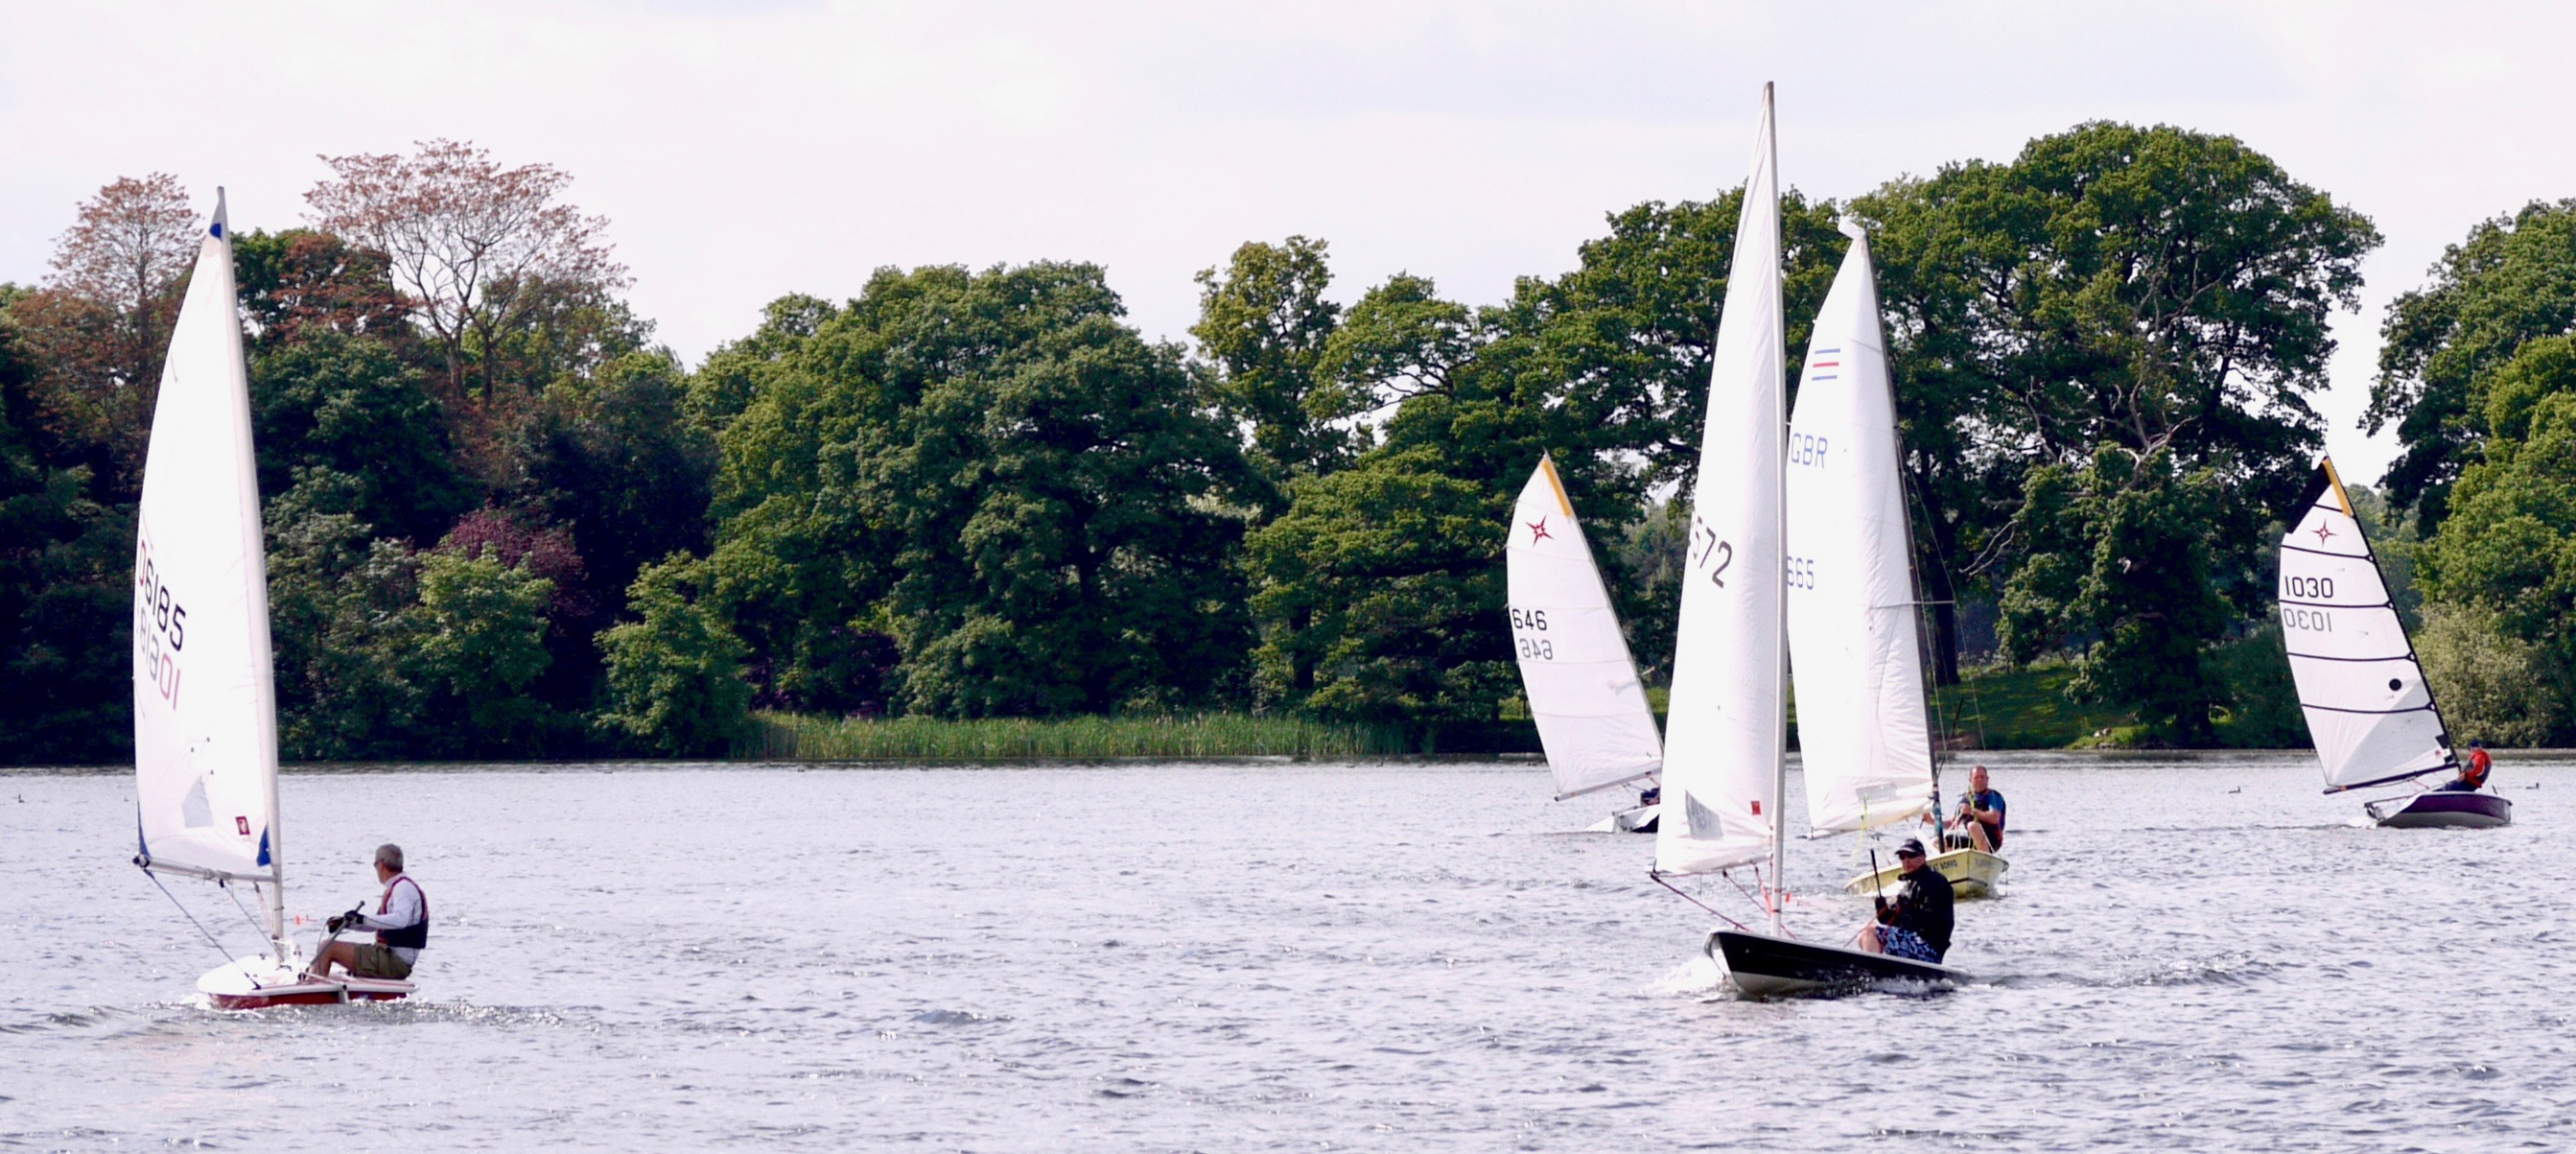 Sailing programme published with new Sunday sailing for leisure sailors